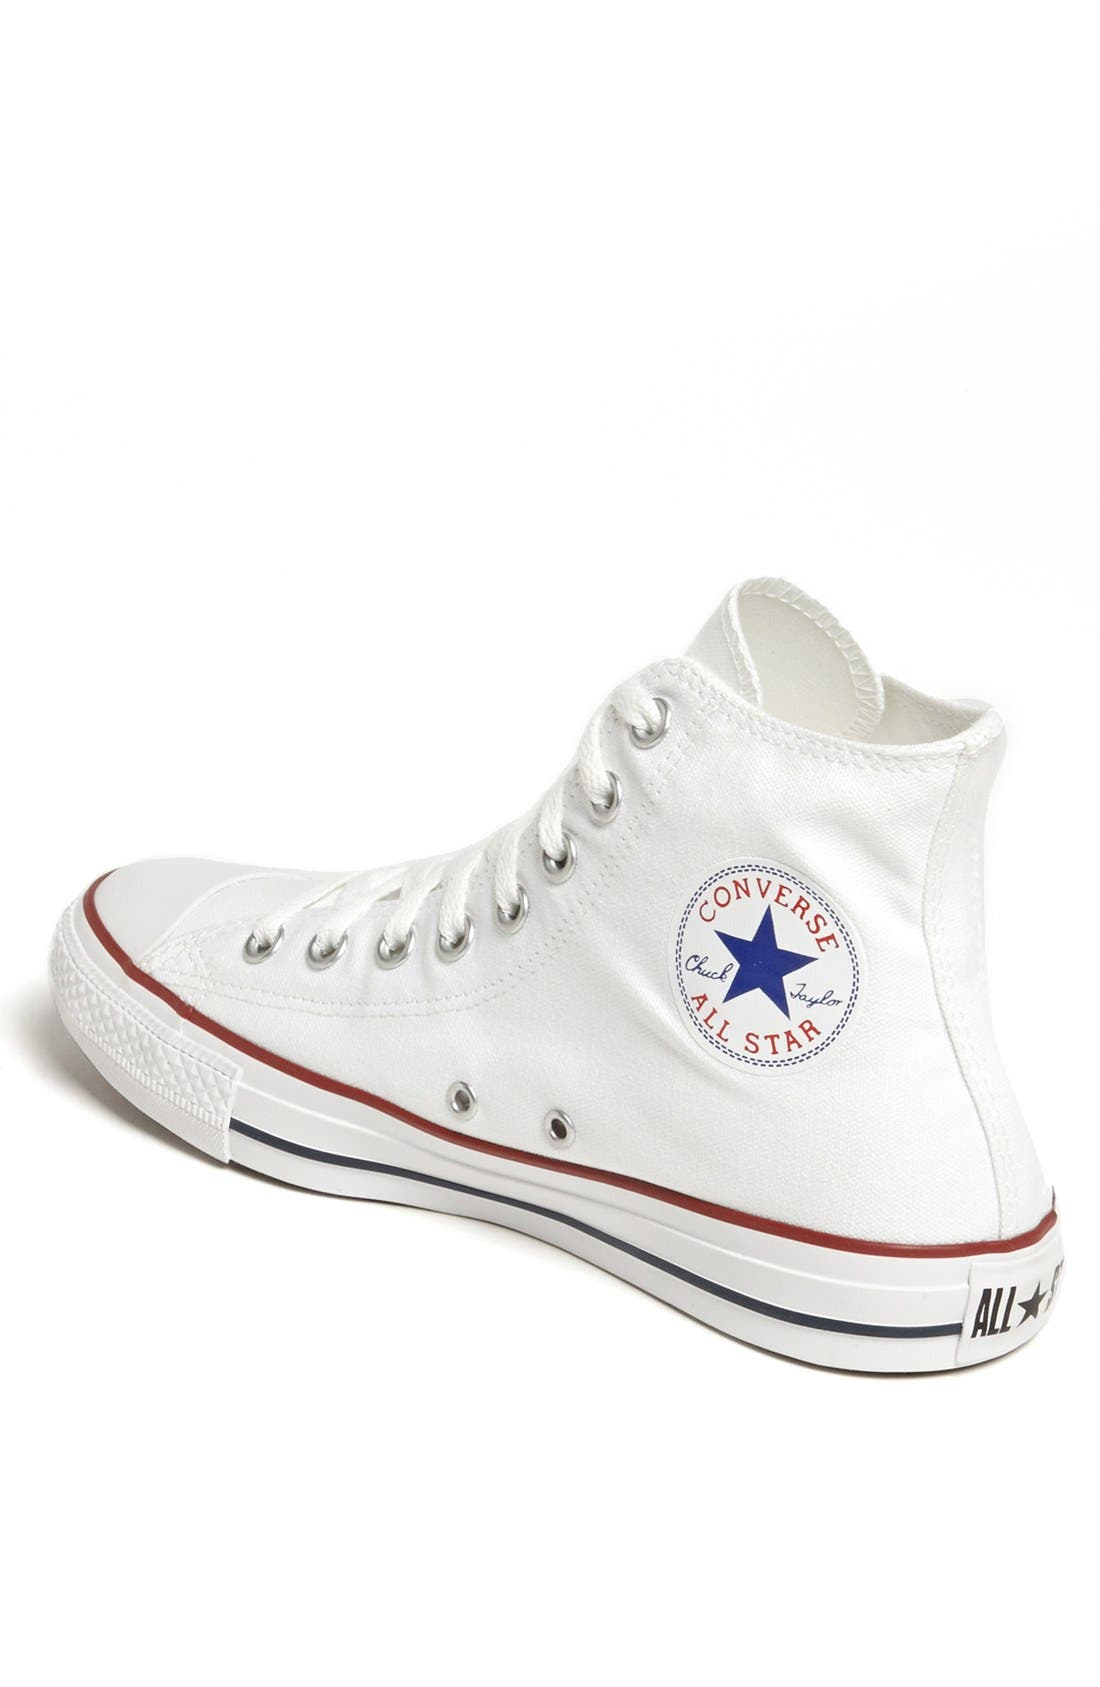 Chuck Taylor<sup>®</sup> High Top Sneaker,                             Alternate thumbnail 2, color,                             OPTIC WHITE